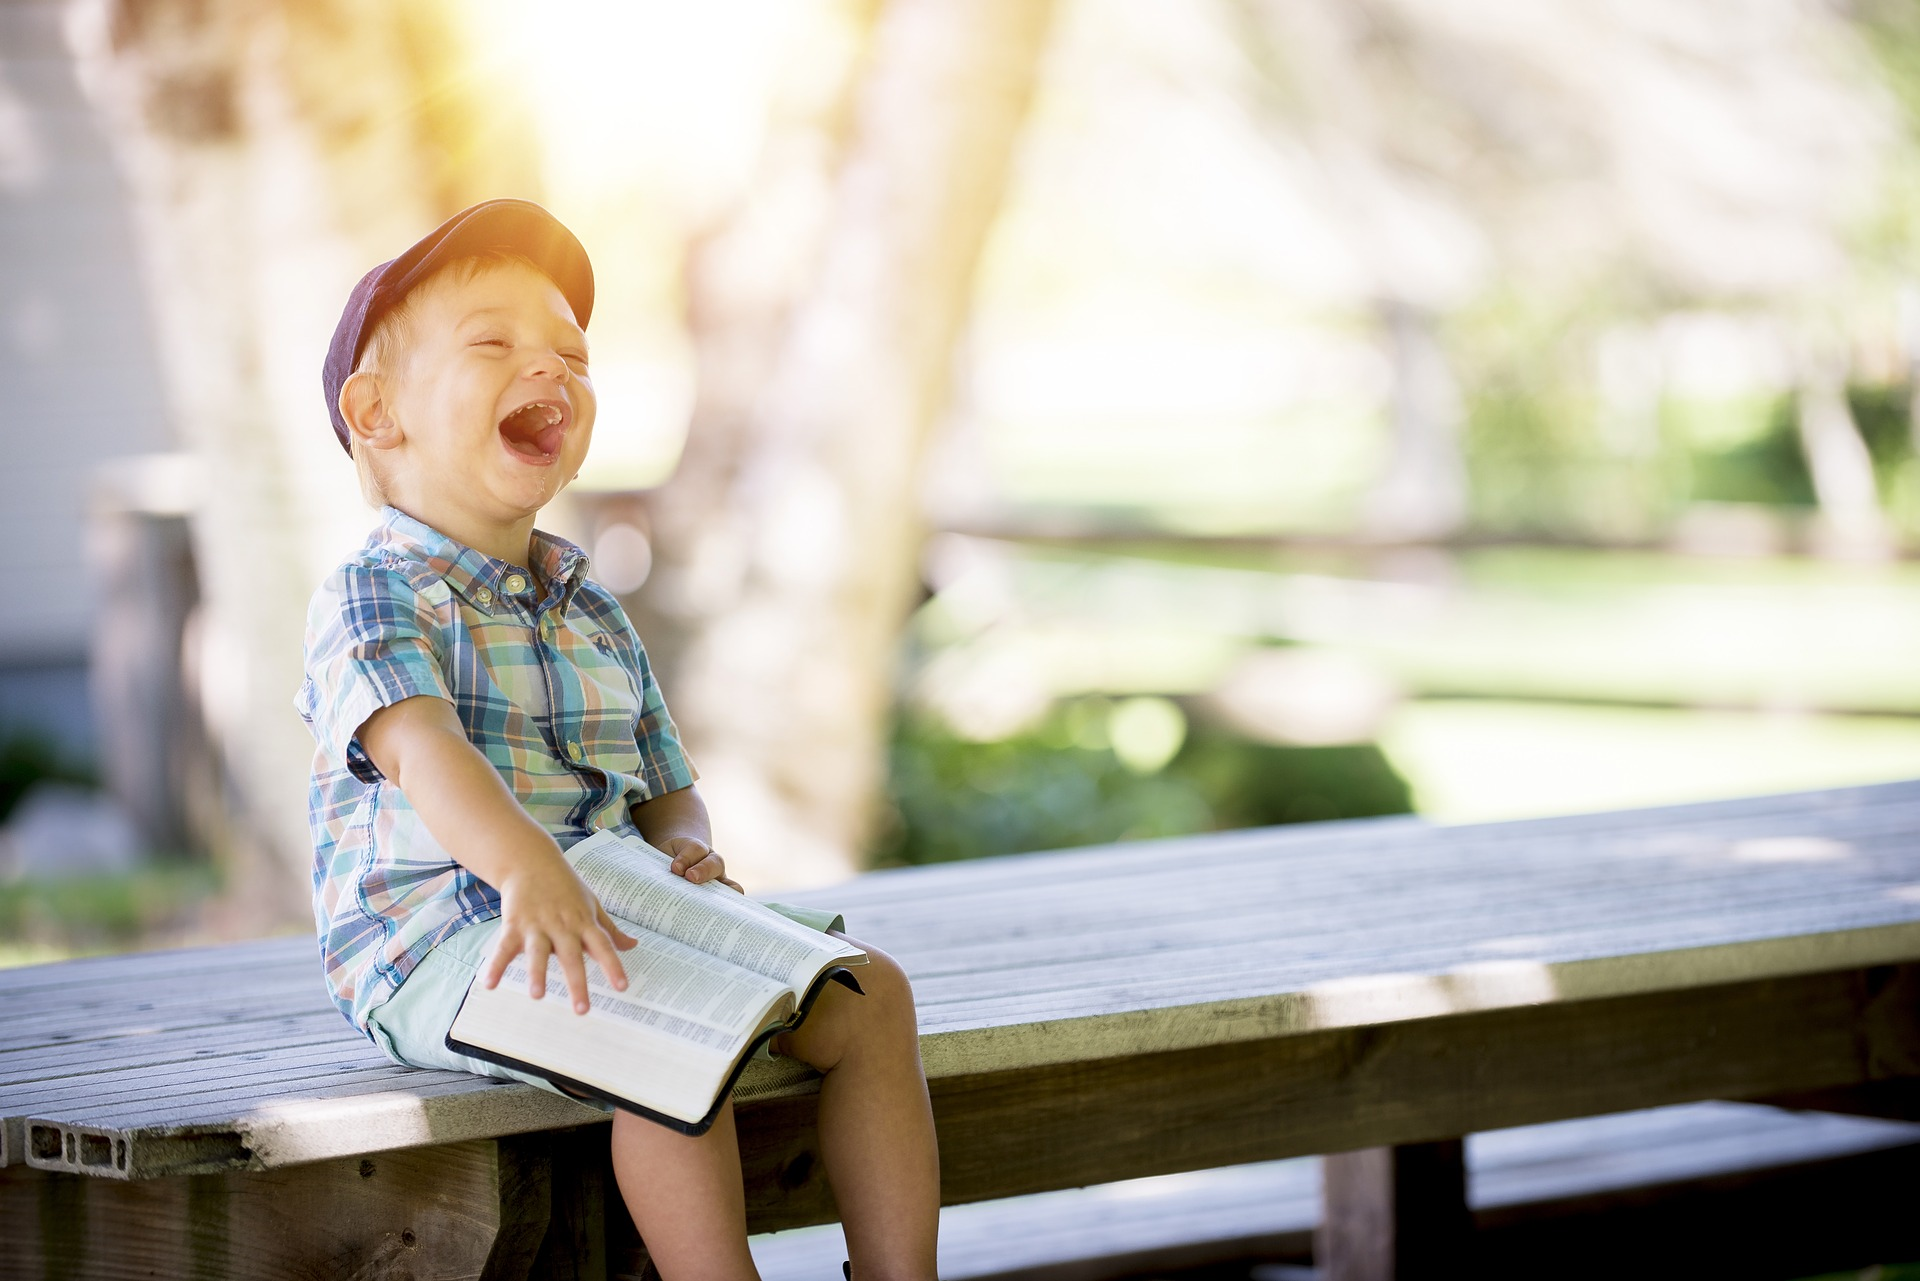 laughing child with book website images